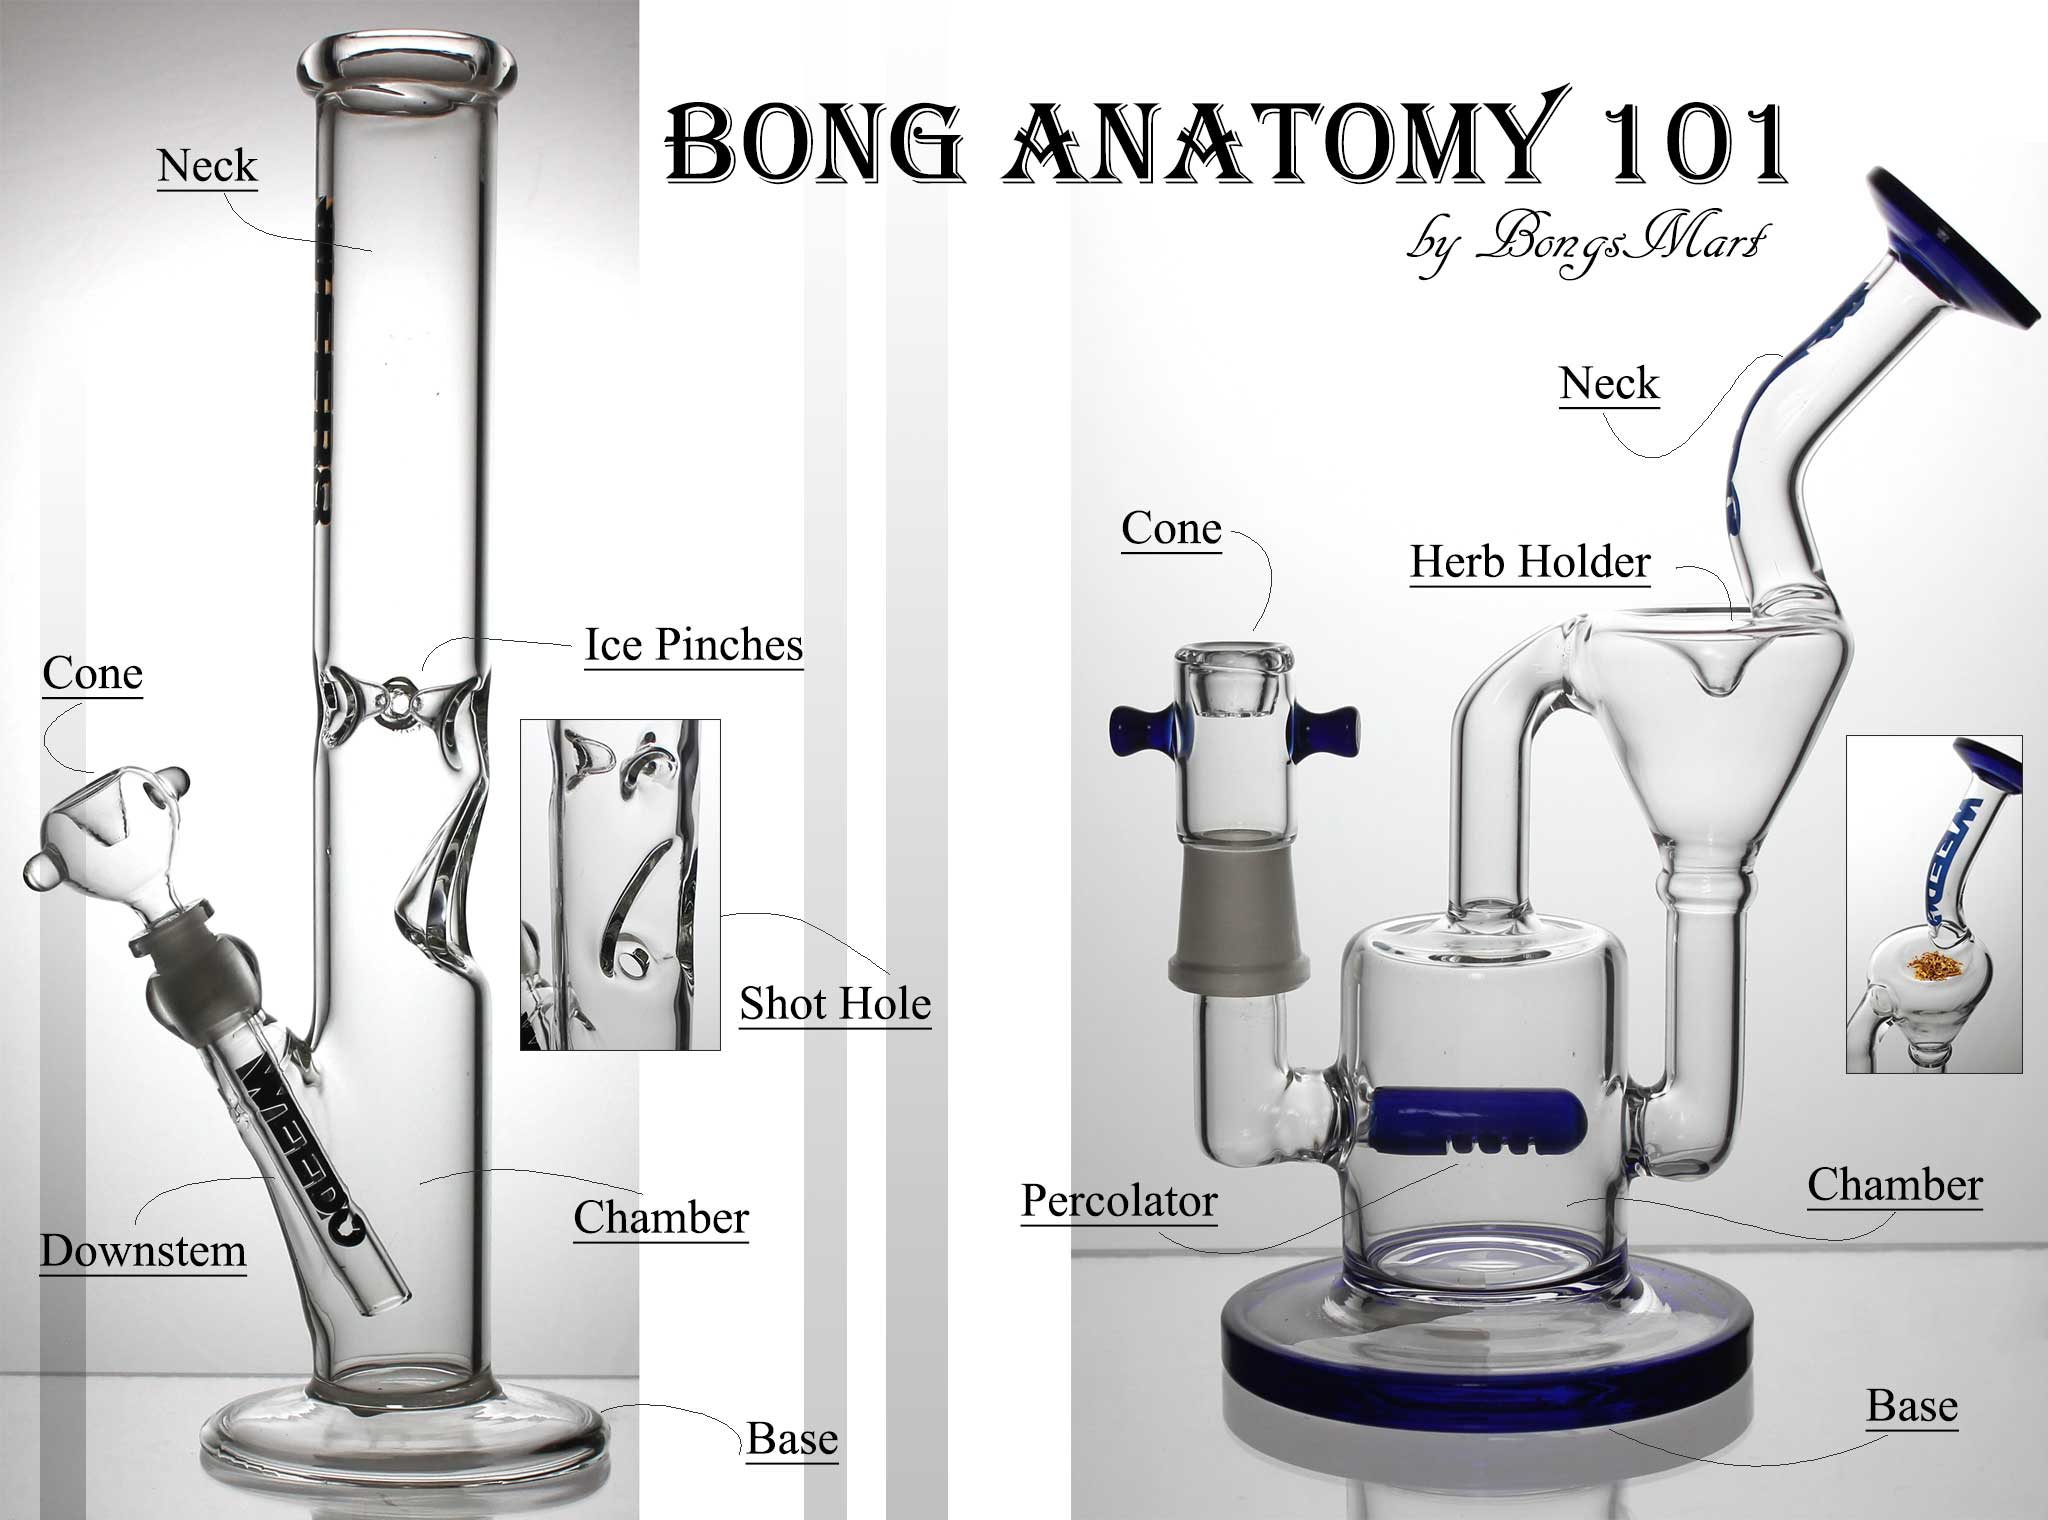 Bong Anatomy 101: An Overview